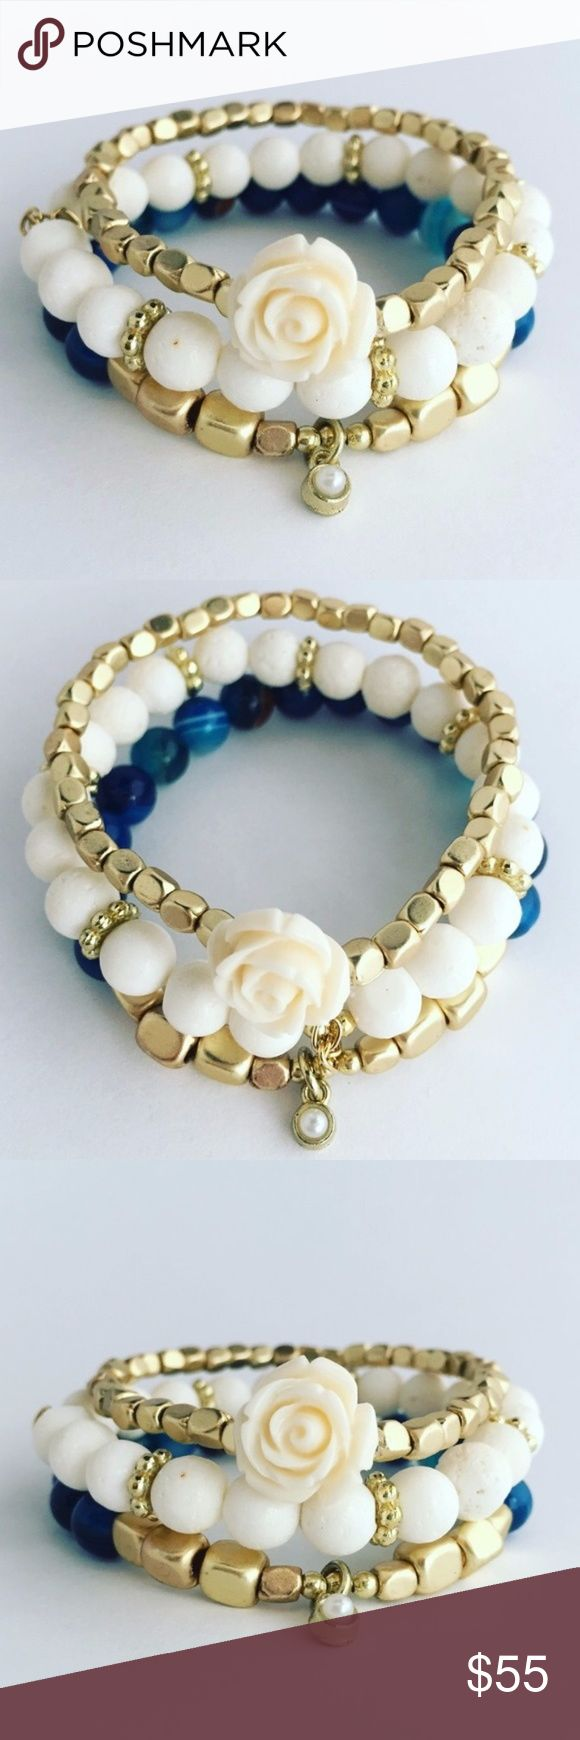 Set of 3 Adjustable Rose and Agate Bracelets Gorgeous.  Blue agate, with blue glass beads.  Ivory and gold beads and featured with a stunning ivory rose.  3 bracelets for one low price.  These are going to be gone quickly, don't wait - get yours today... Jewelry Bracelets